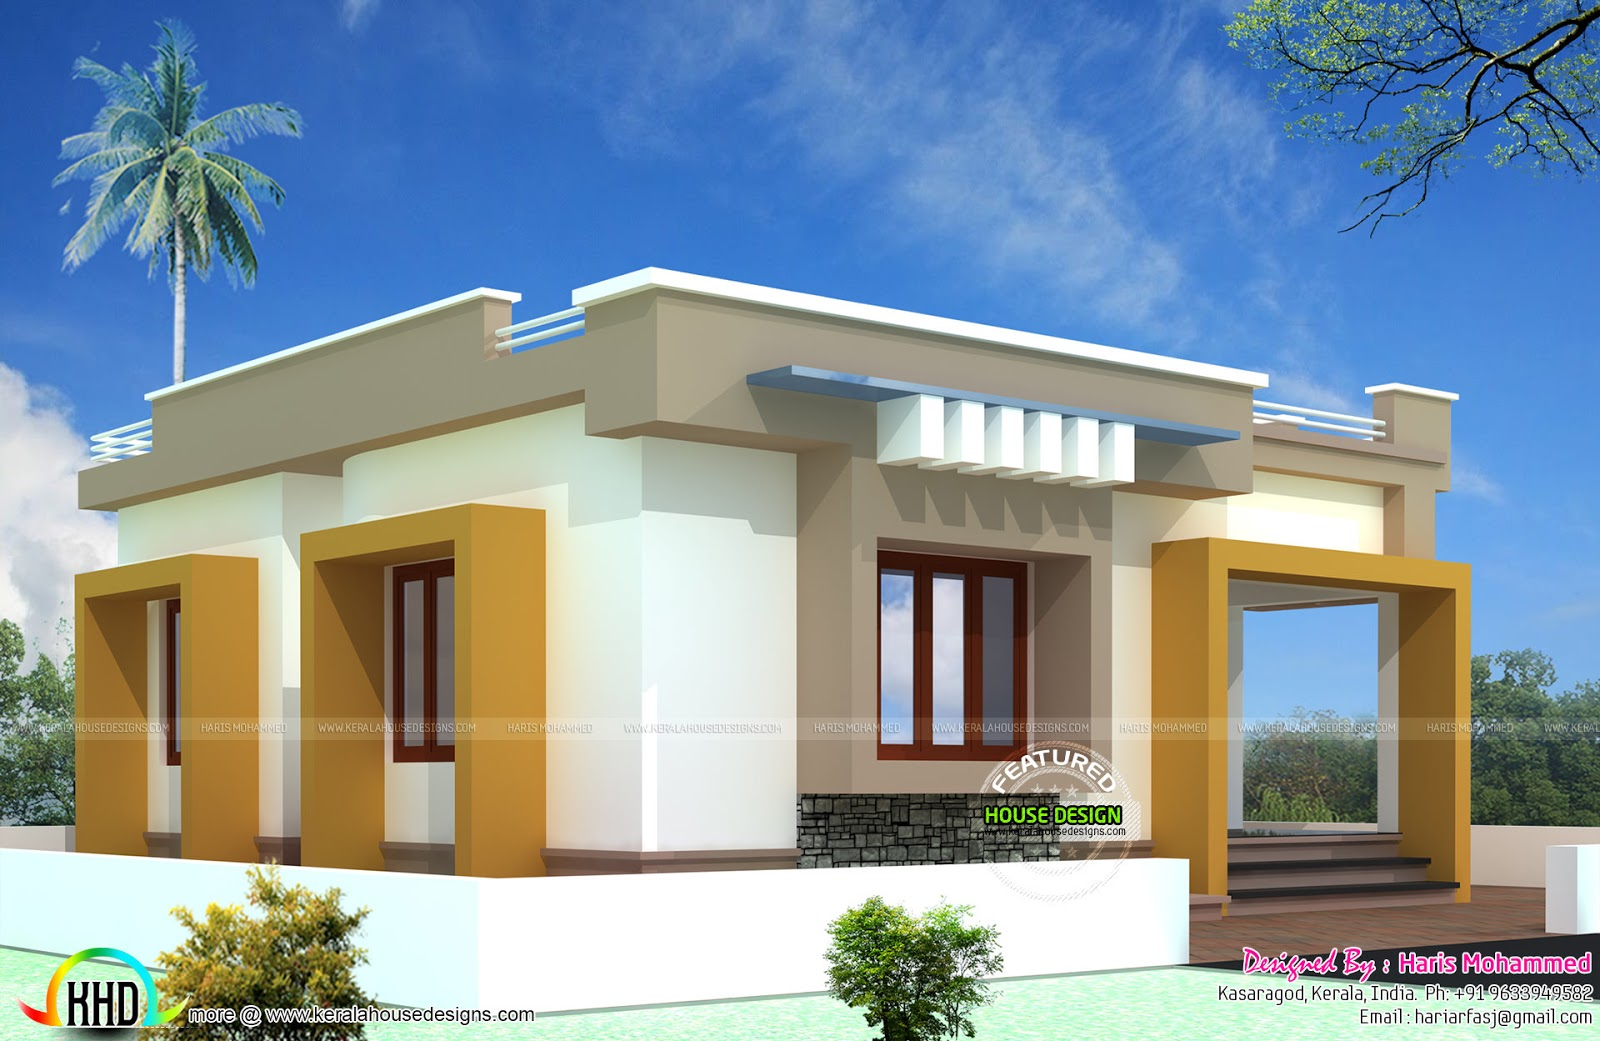 ₹10 lakhs bud house plan Kerala home design and floor plans